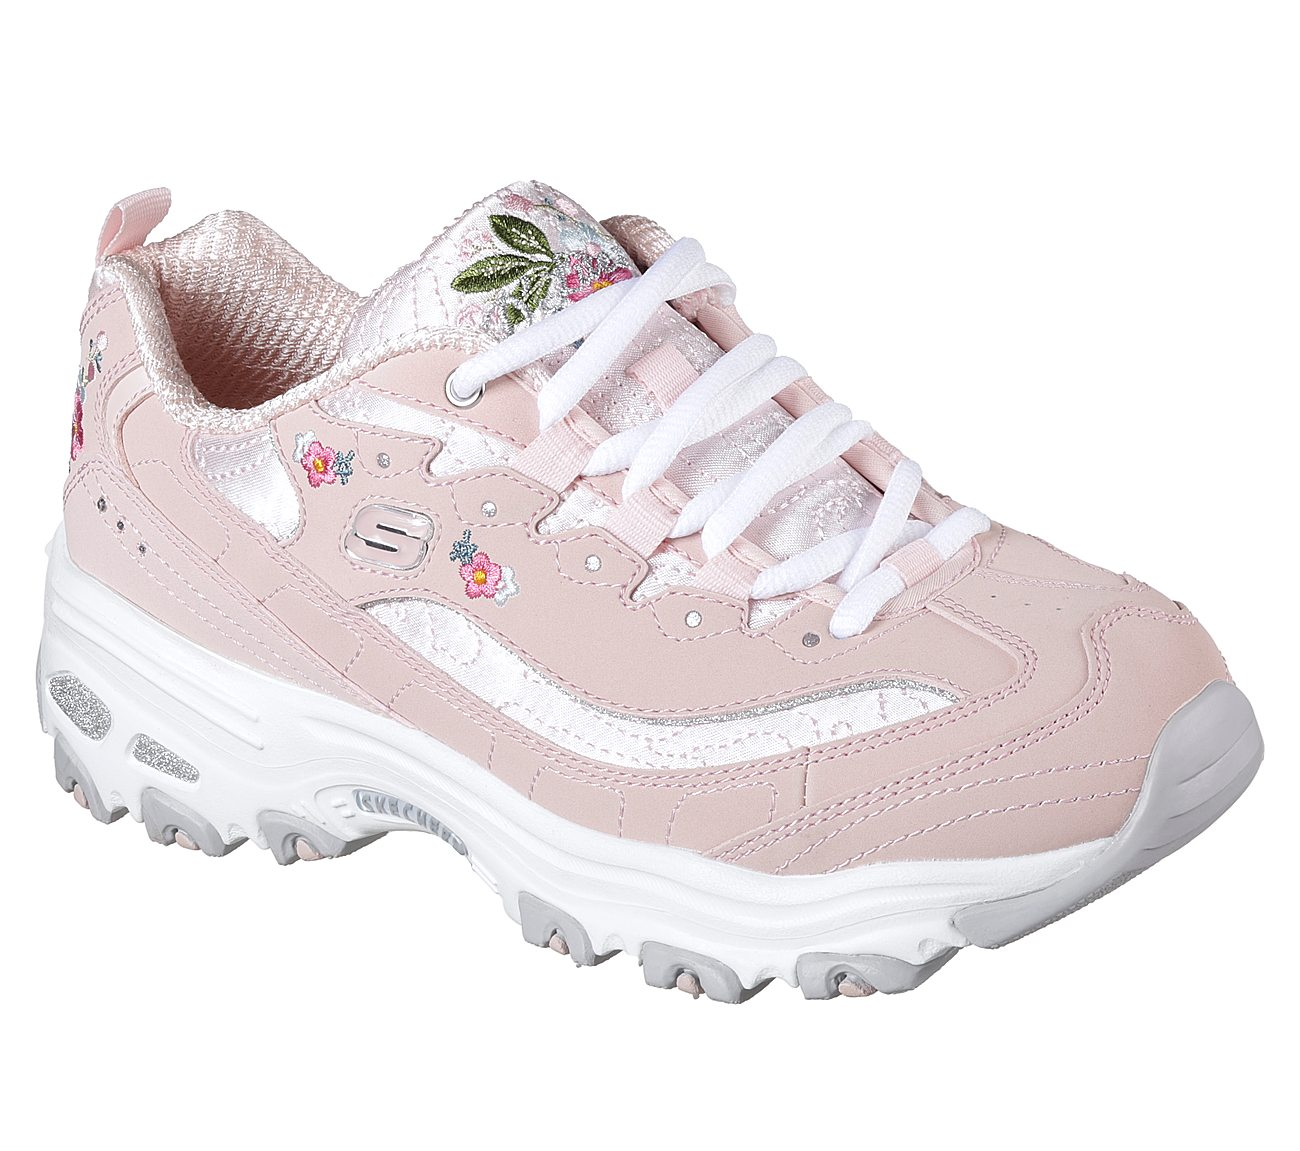 skechers memory foam chile